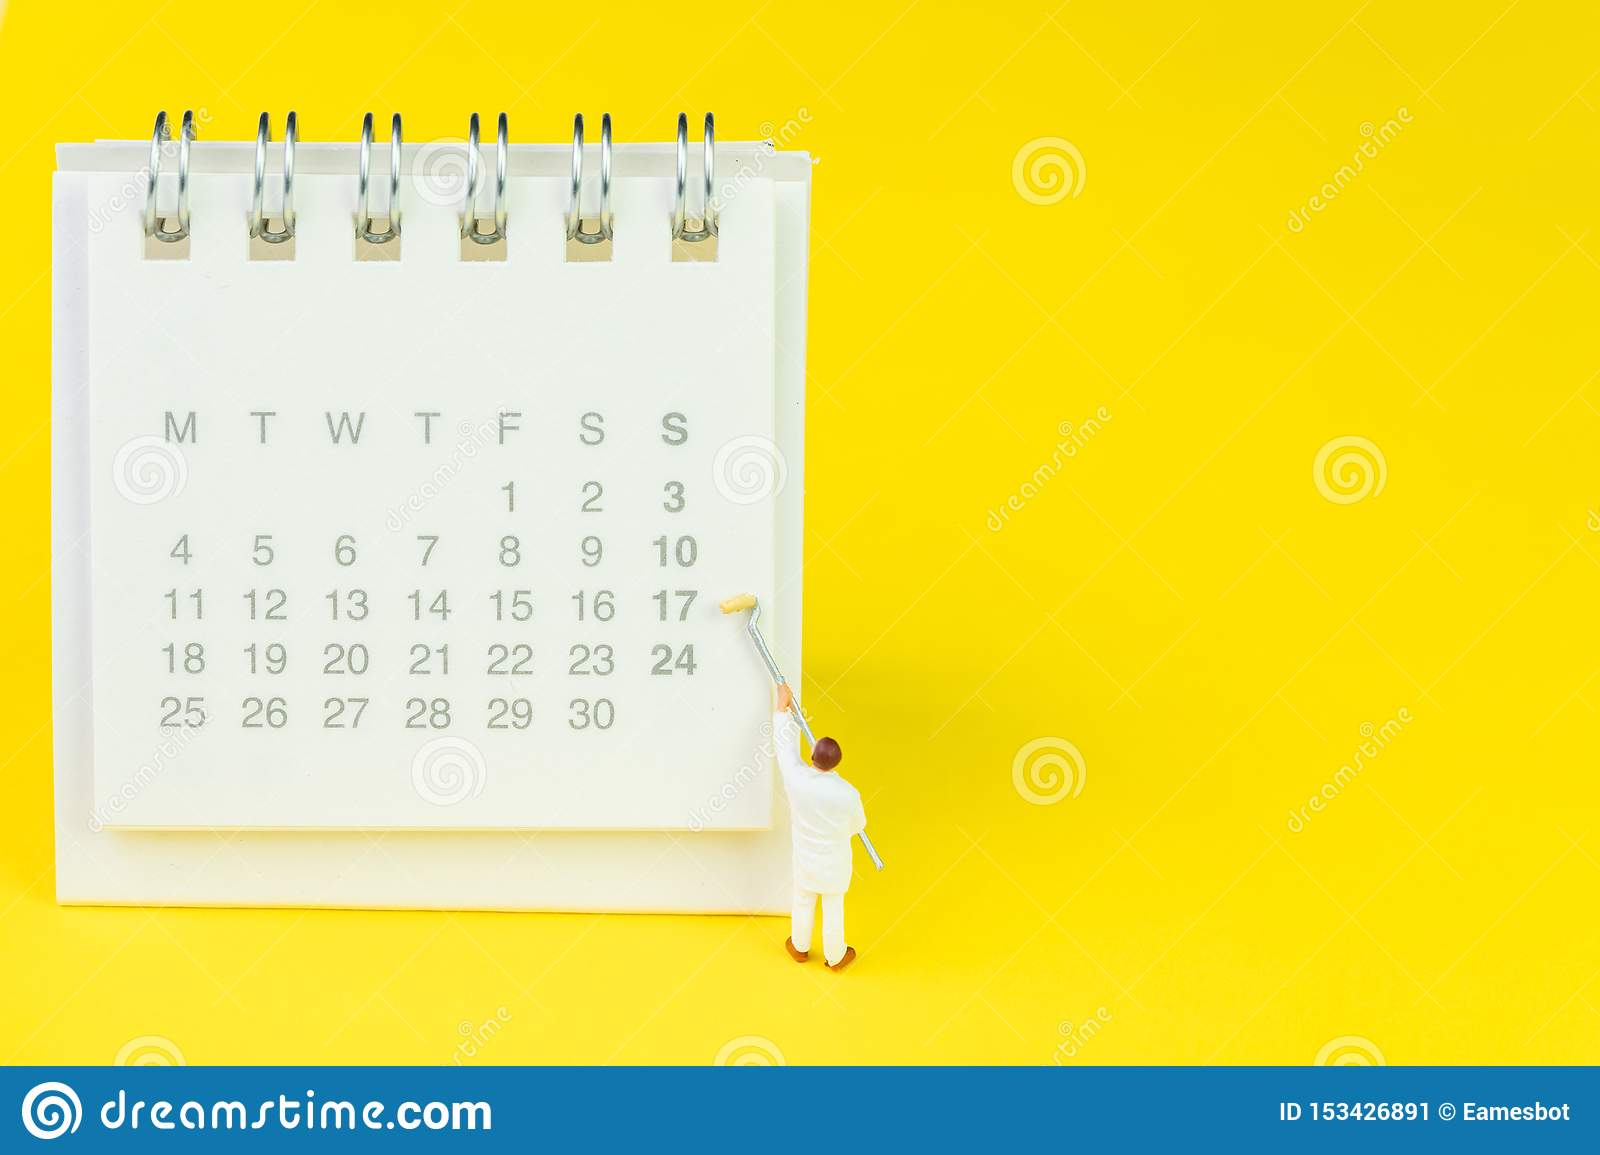 Miniature People Figures Using Paint Roller On White Clean with regard to Desktop Calendar Reminder Free Full Version